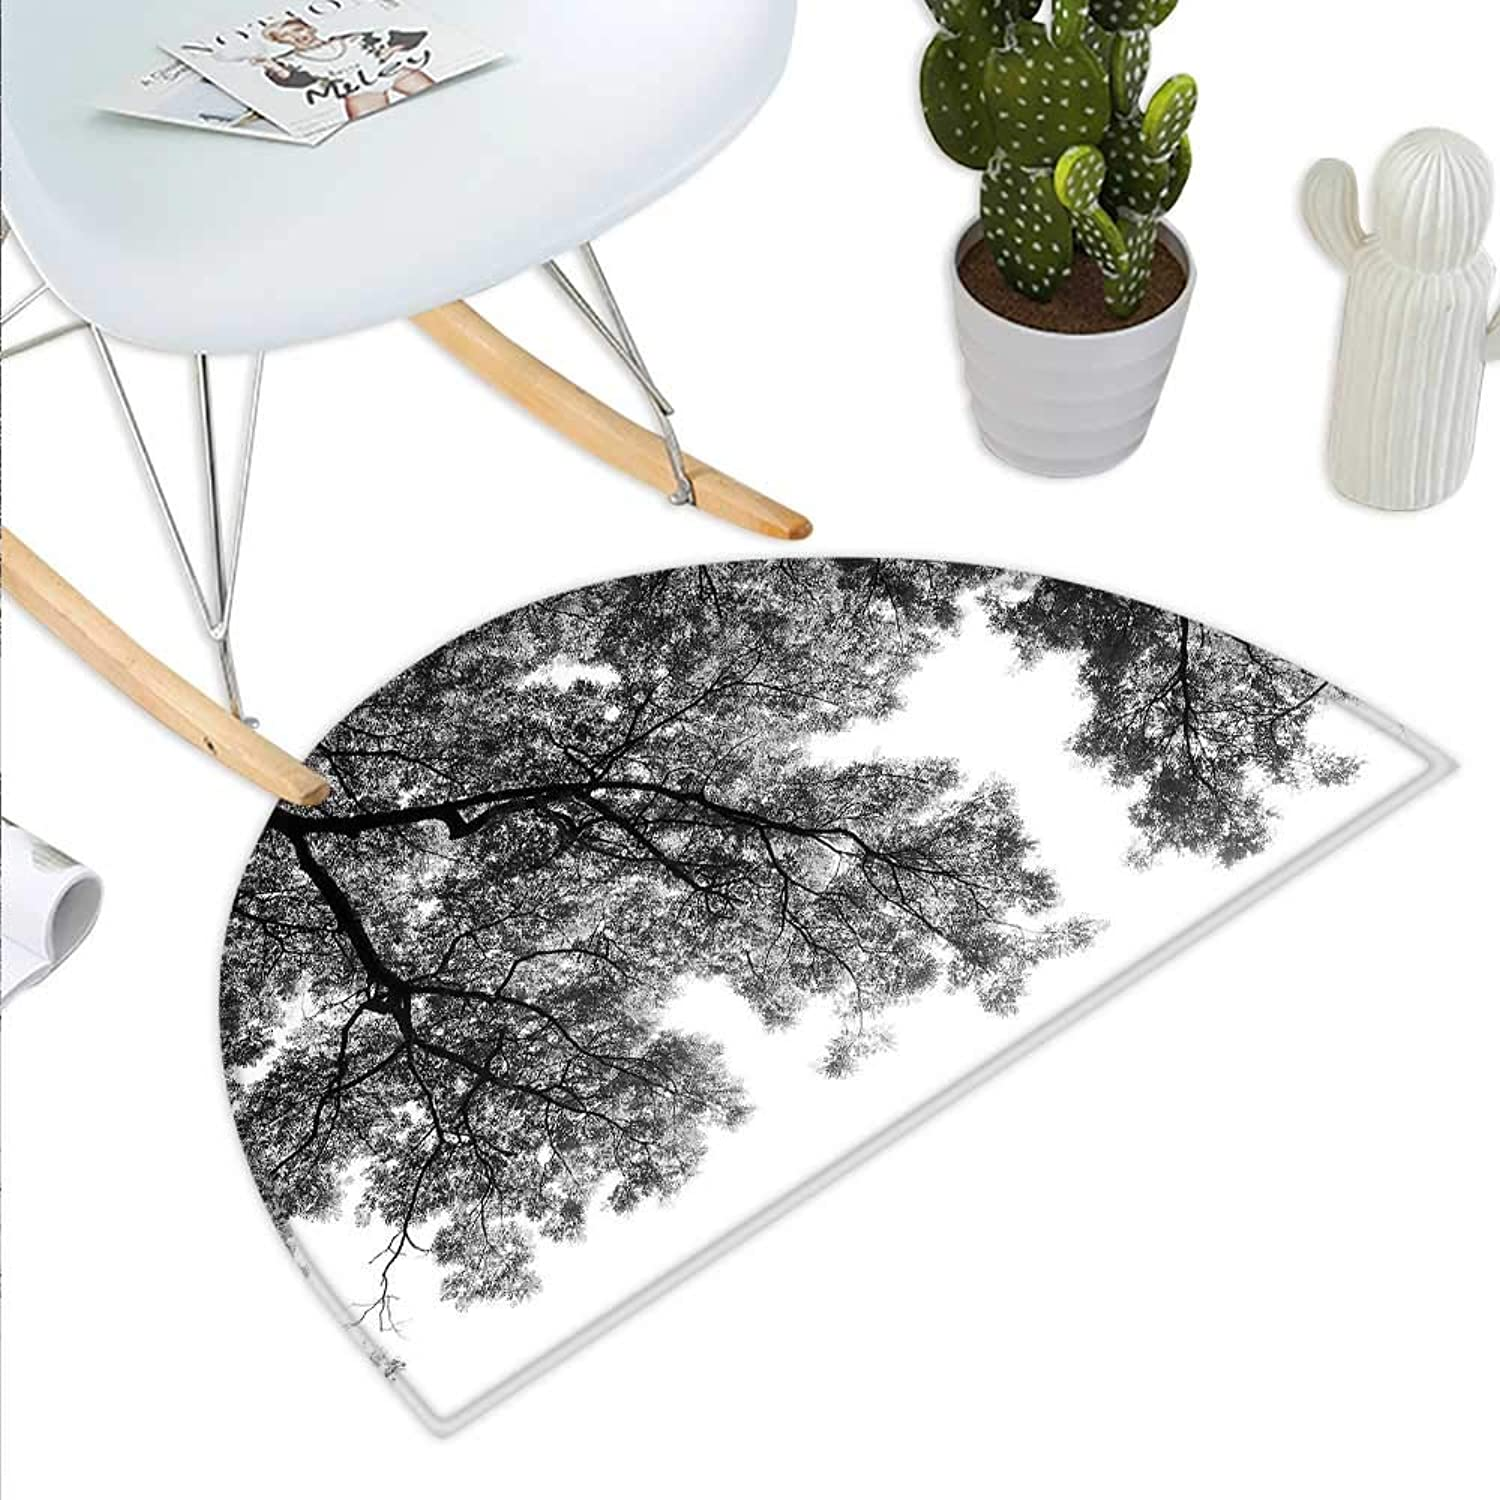 Nature Semicircle Doormat Photograph of Trees from The Ground with Branches and Leaves Artwork Image Halfmoon doormats H 43.3  xD 64.9  Black and White